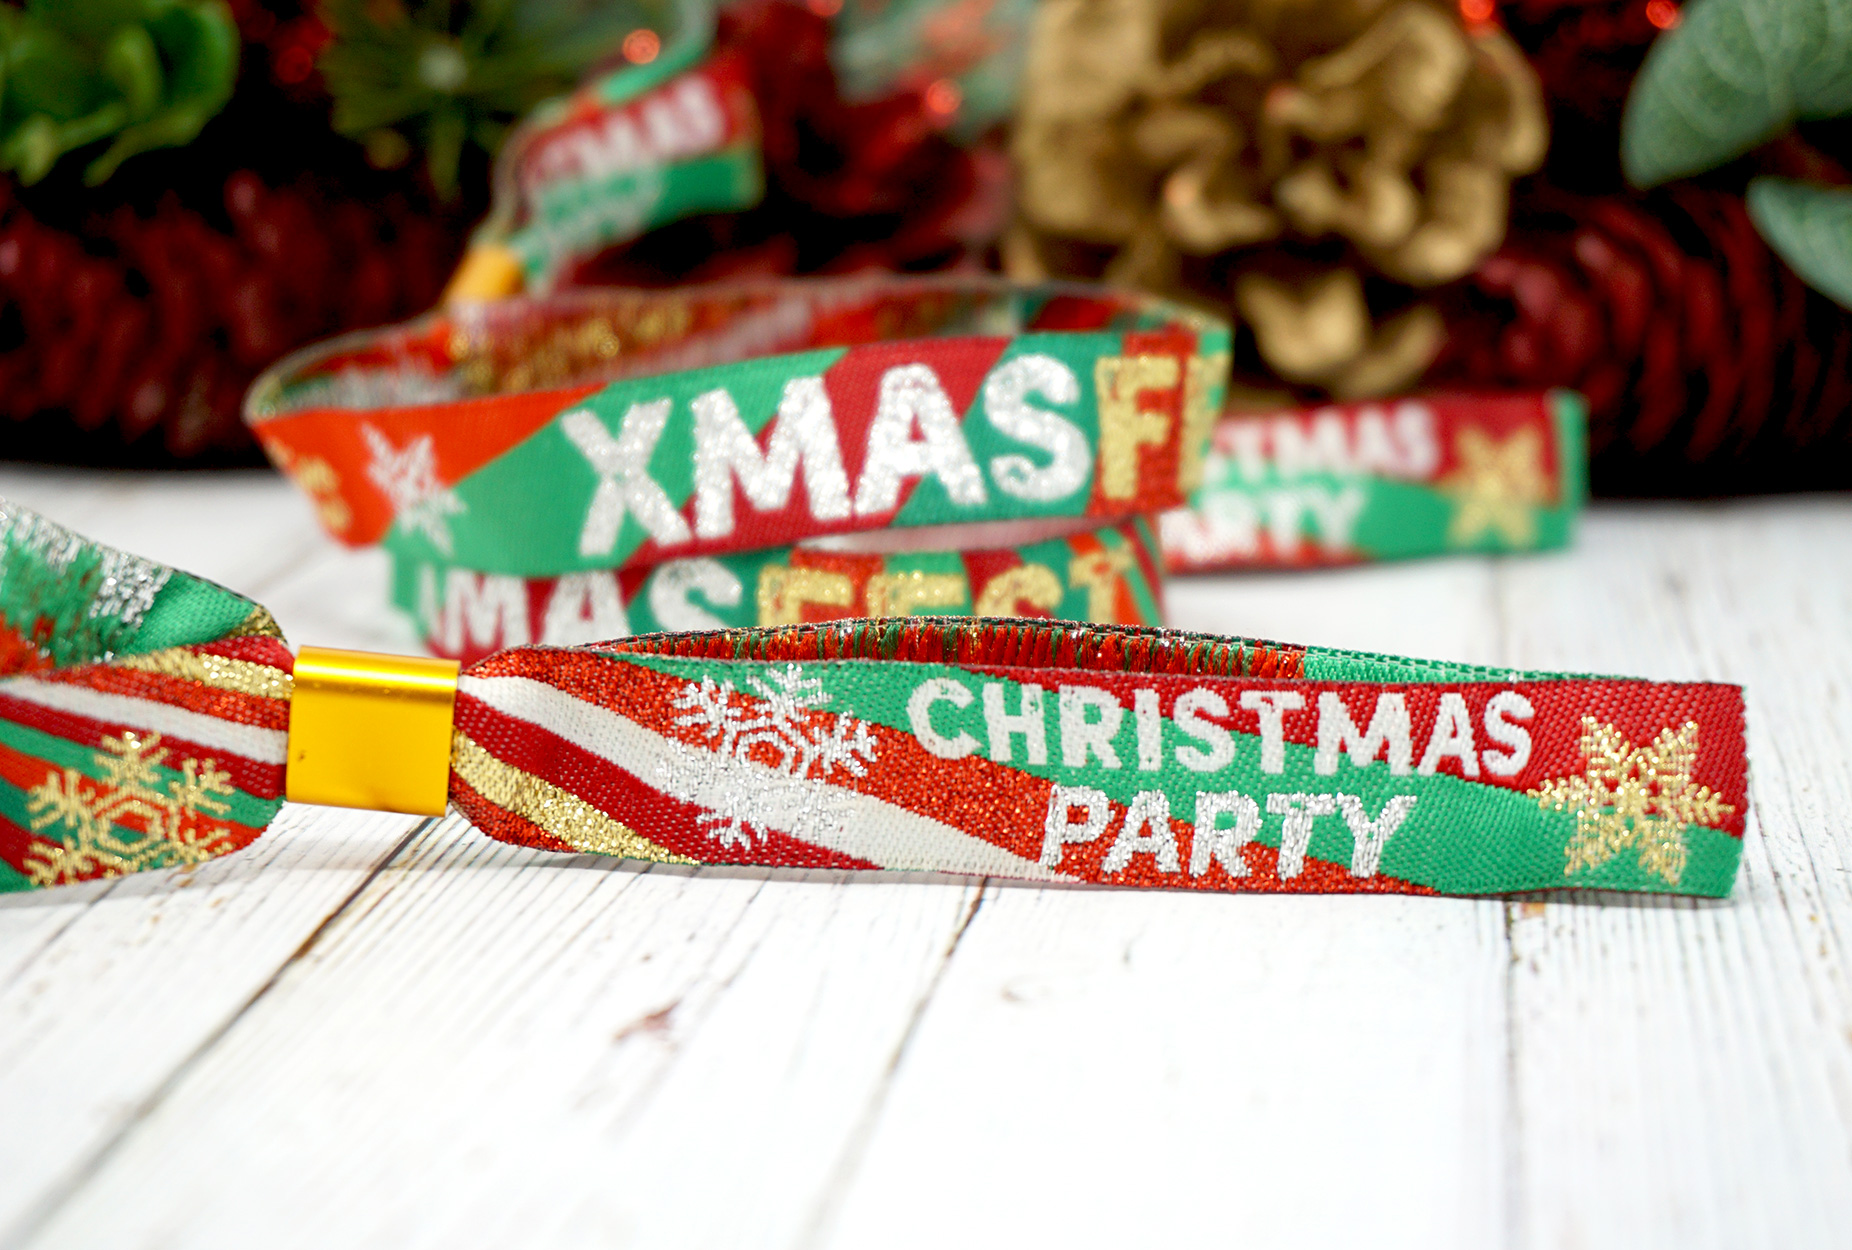 xmas fest festival theme christmas party wristbands